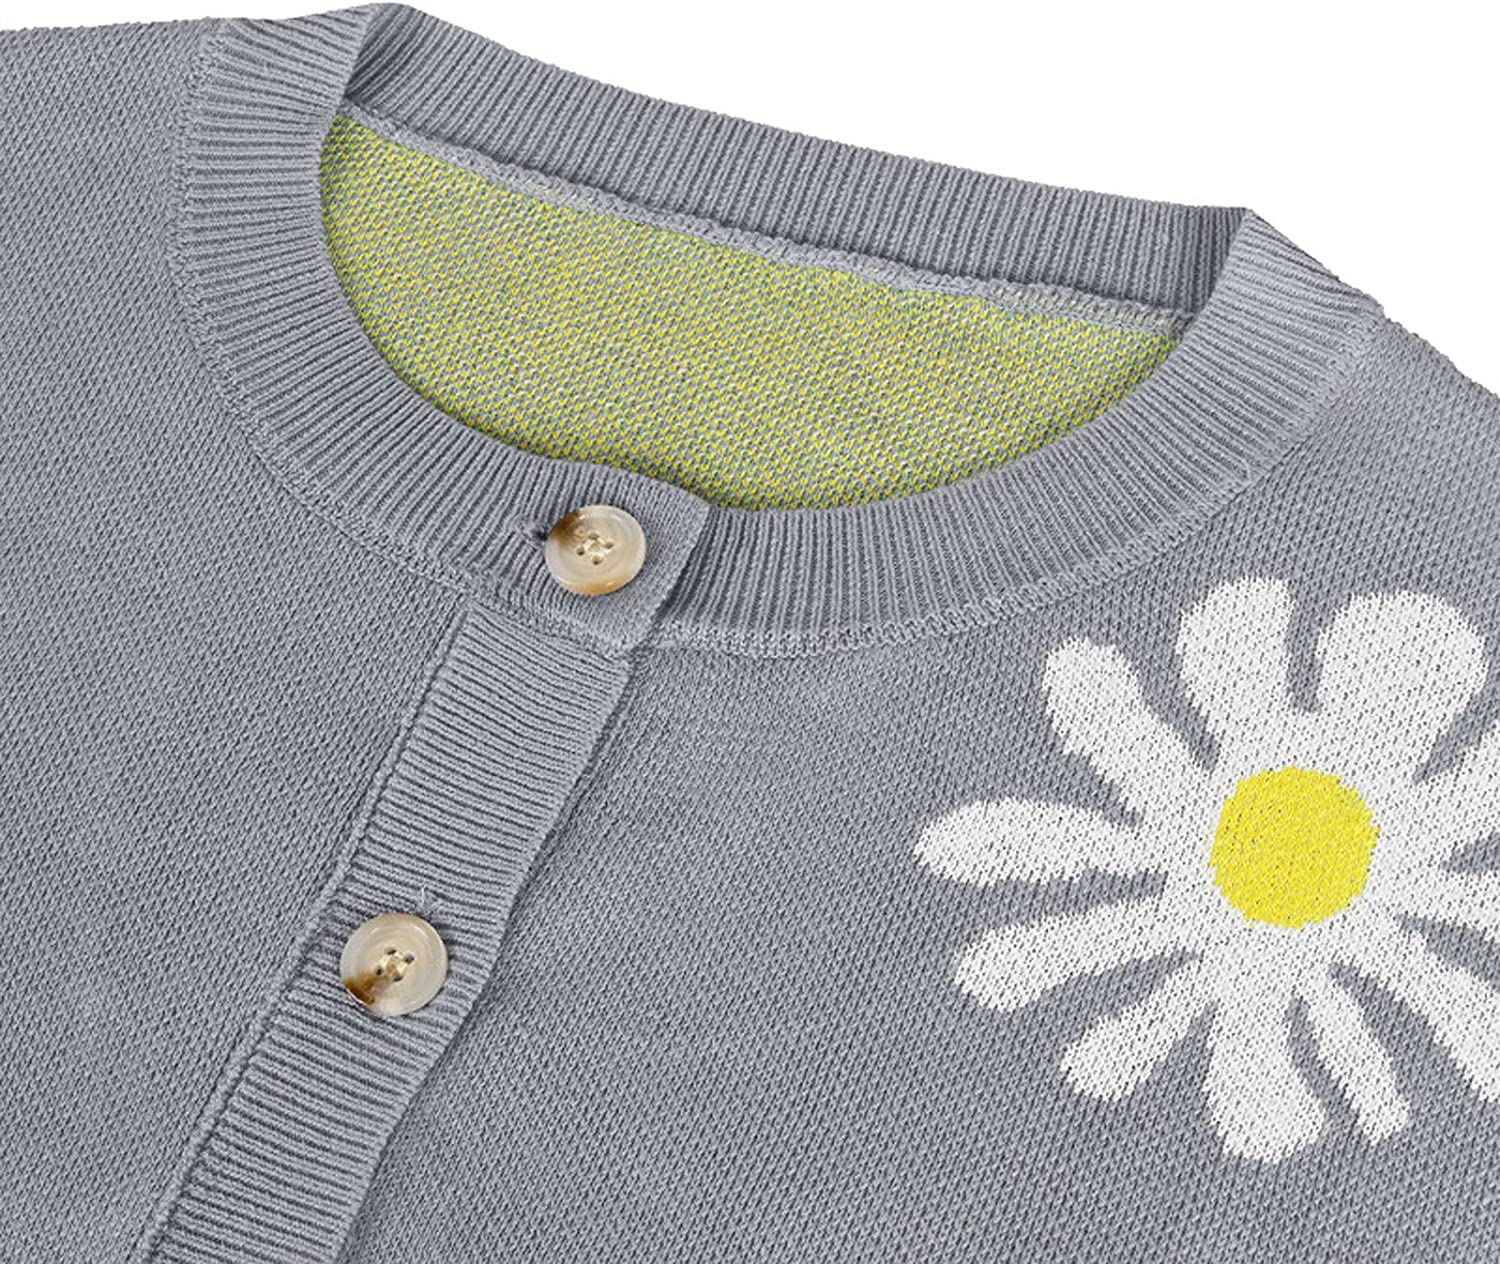 Women's Daisy Print Knitted Cardigan Fashion Long Sleeve Button Sweater Coat Autumn Casual Crewneck Loose Shirts